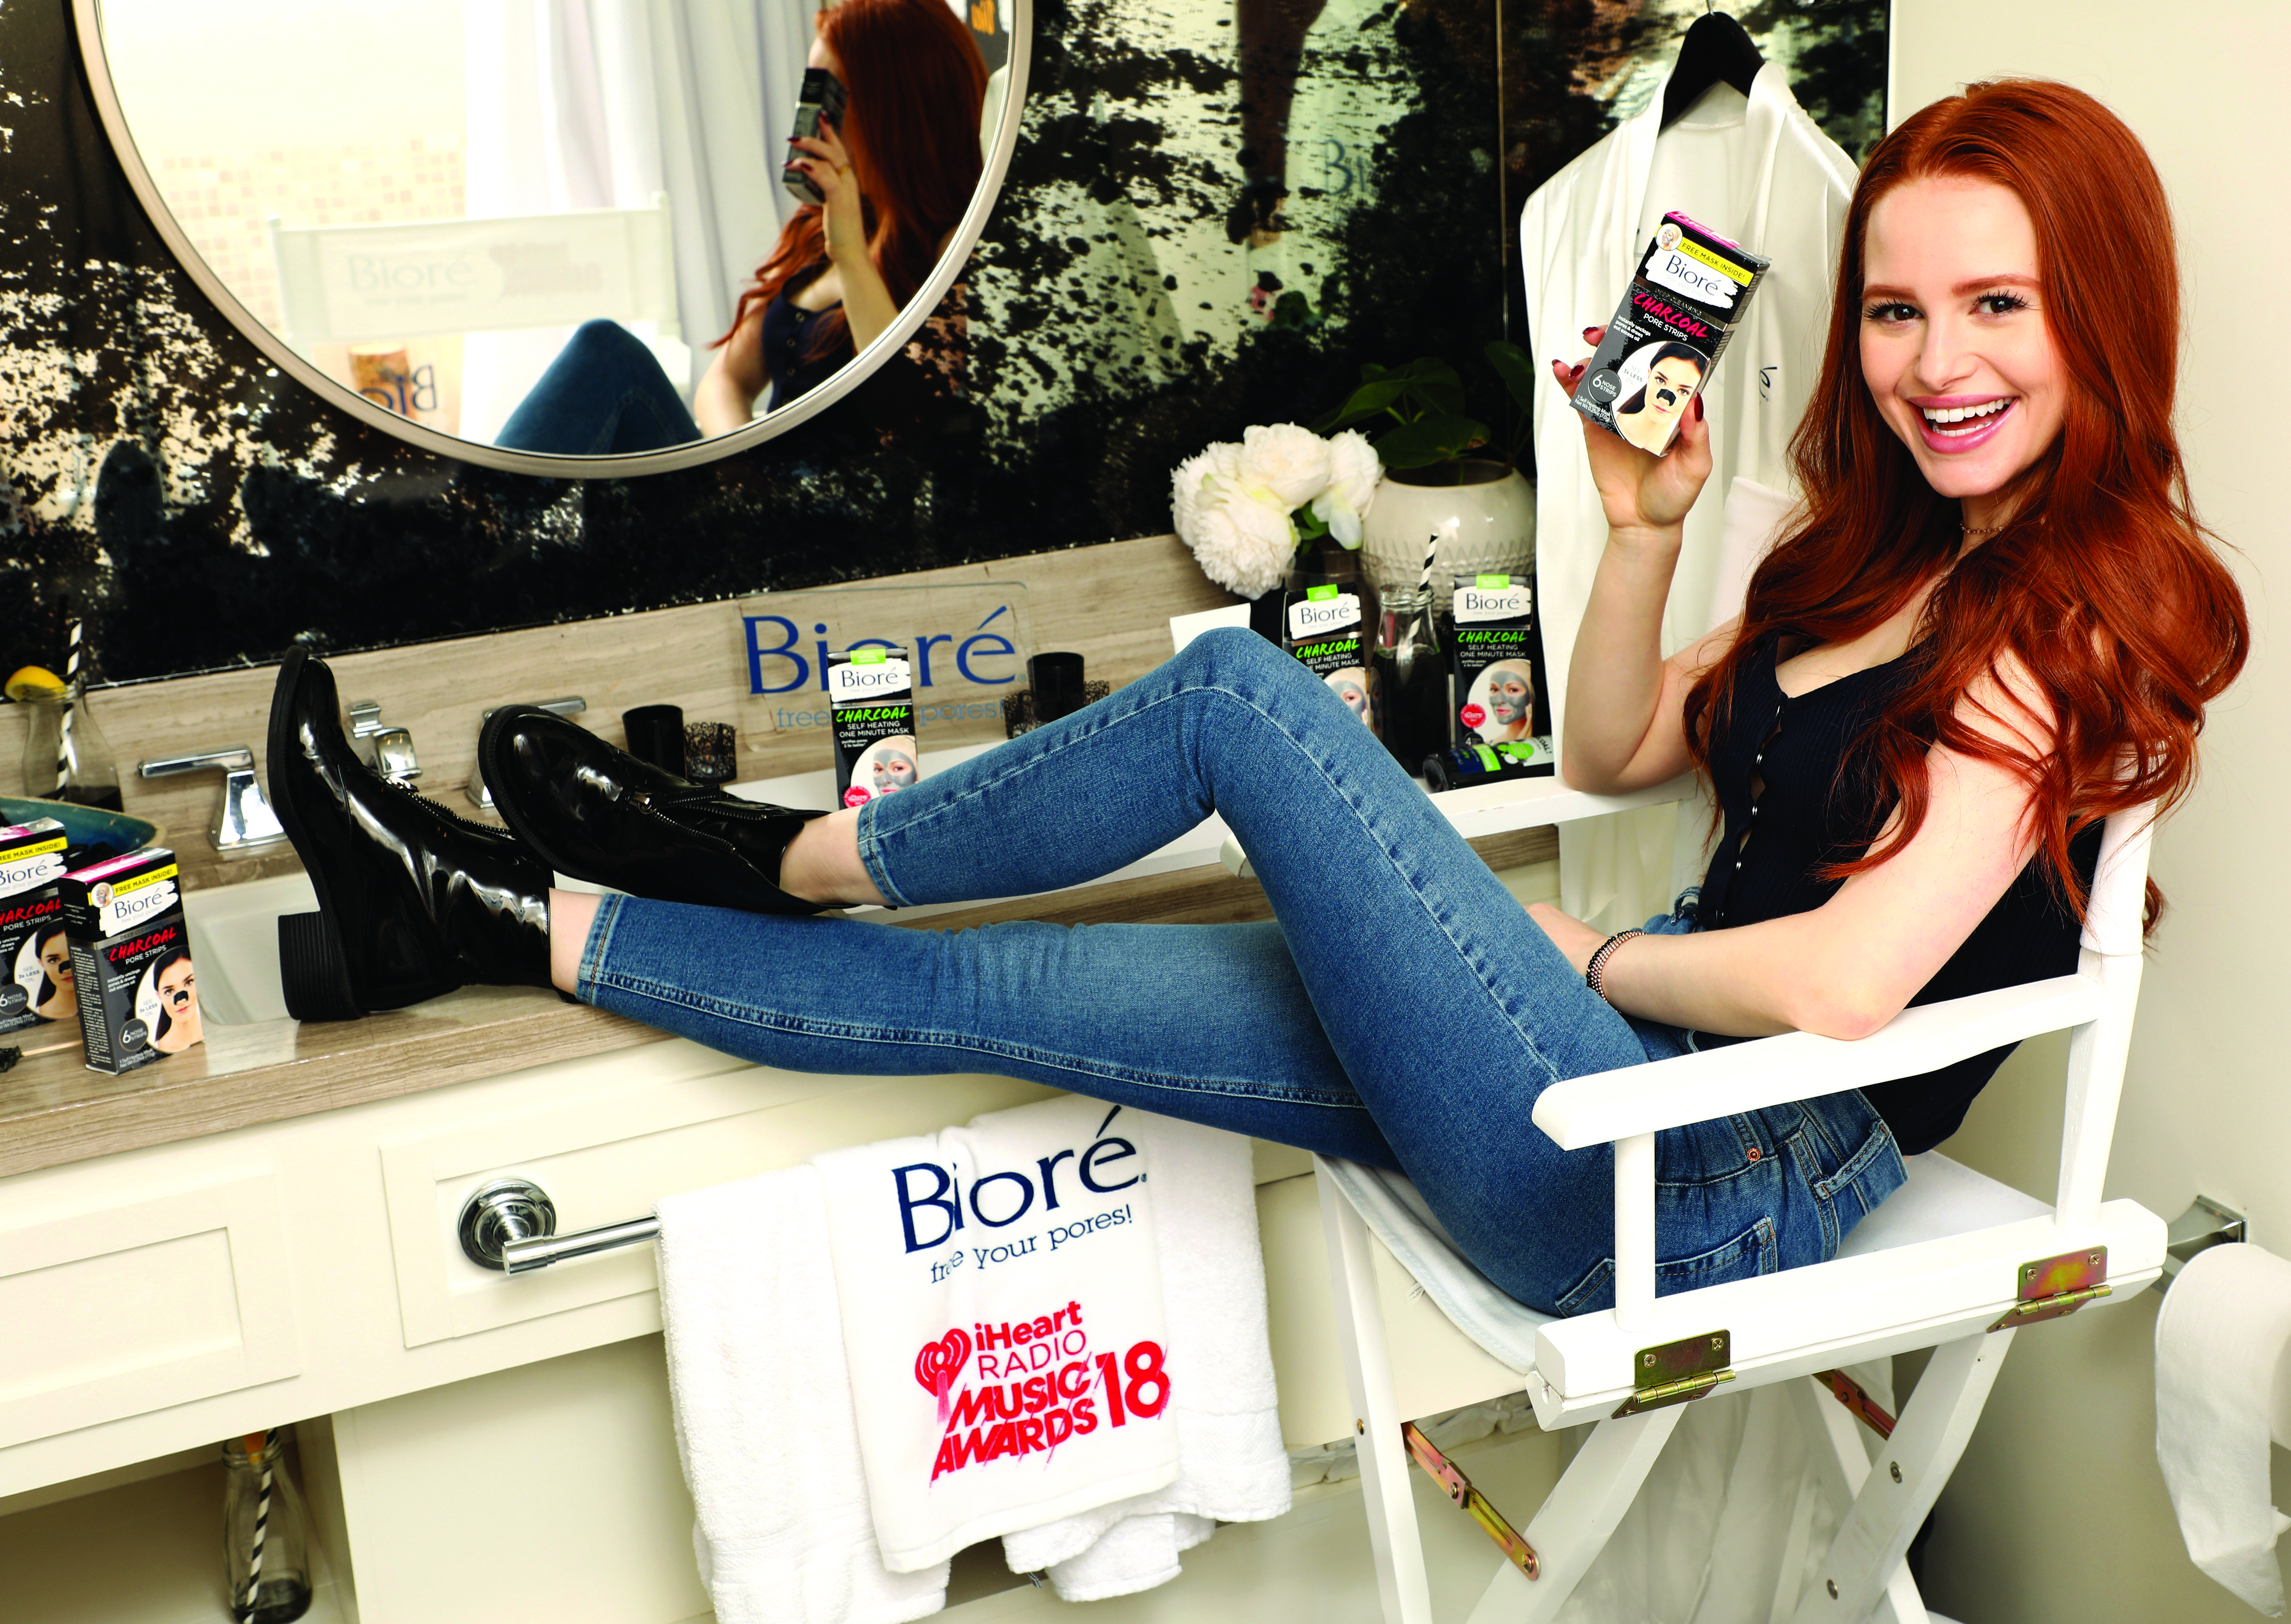 Madelaine Petsch at the Bioré Pop-Up Skin Spa